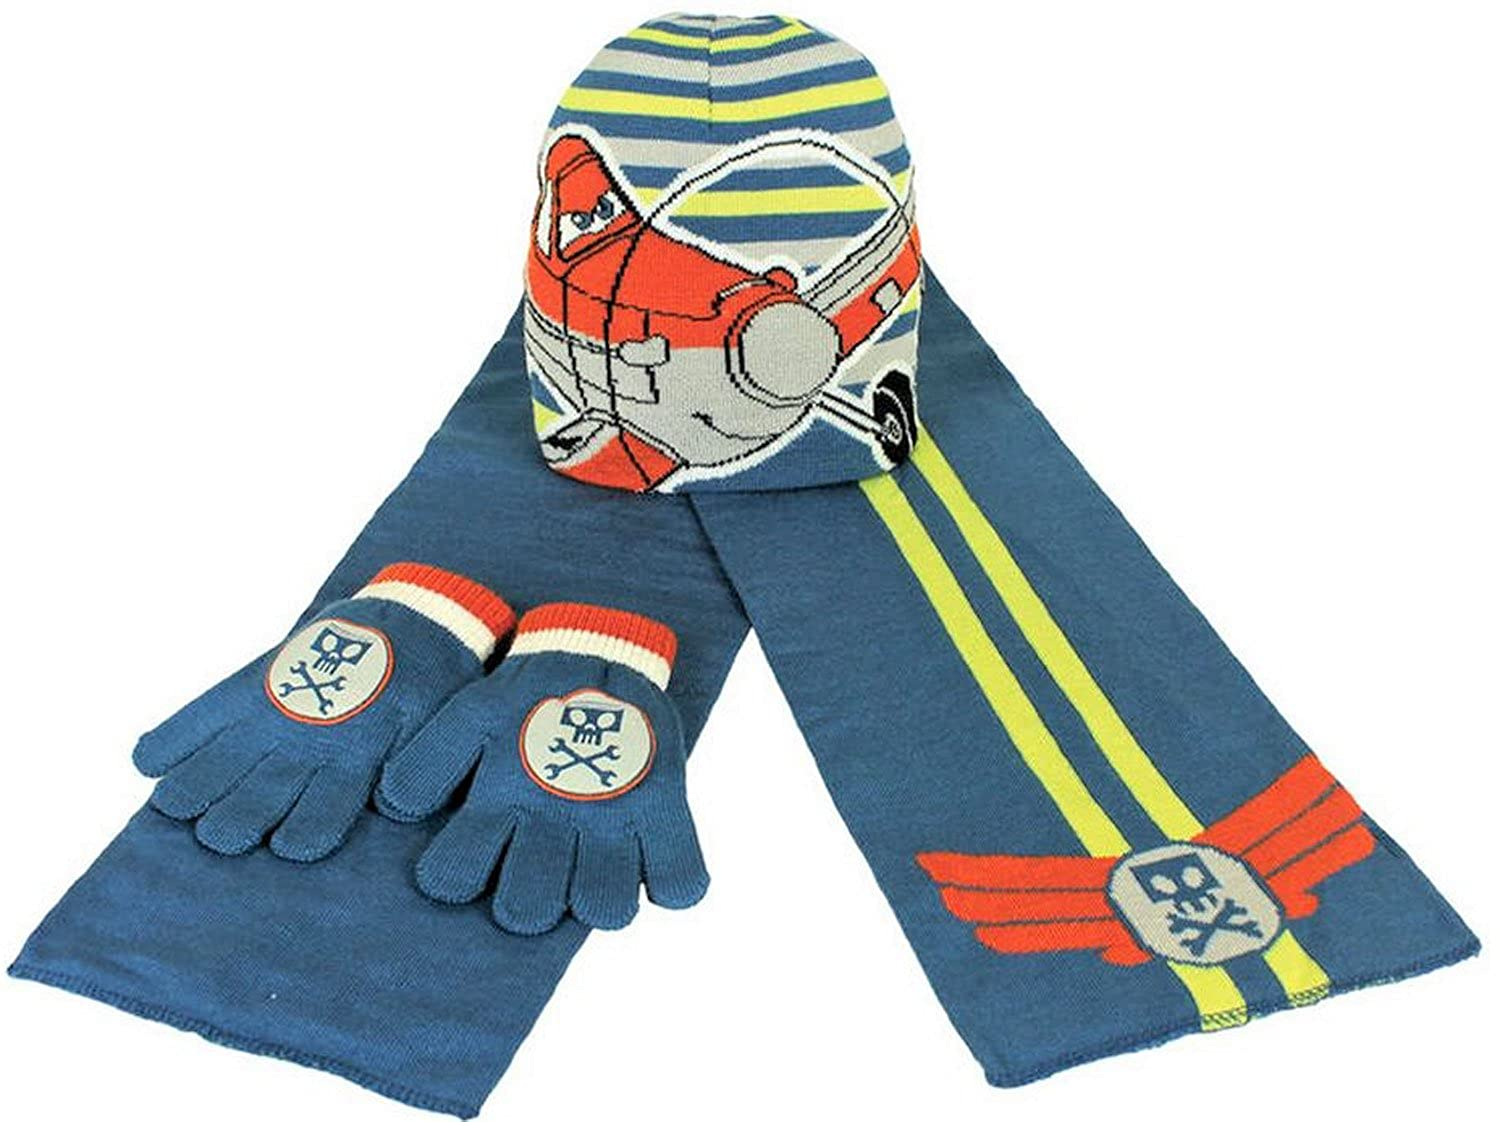 Official Disney Planes - 3 Piece - Hat, Gloves and Scarf Set LY-YZQT-YYH3